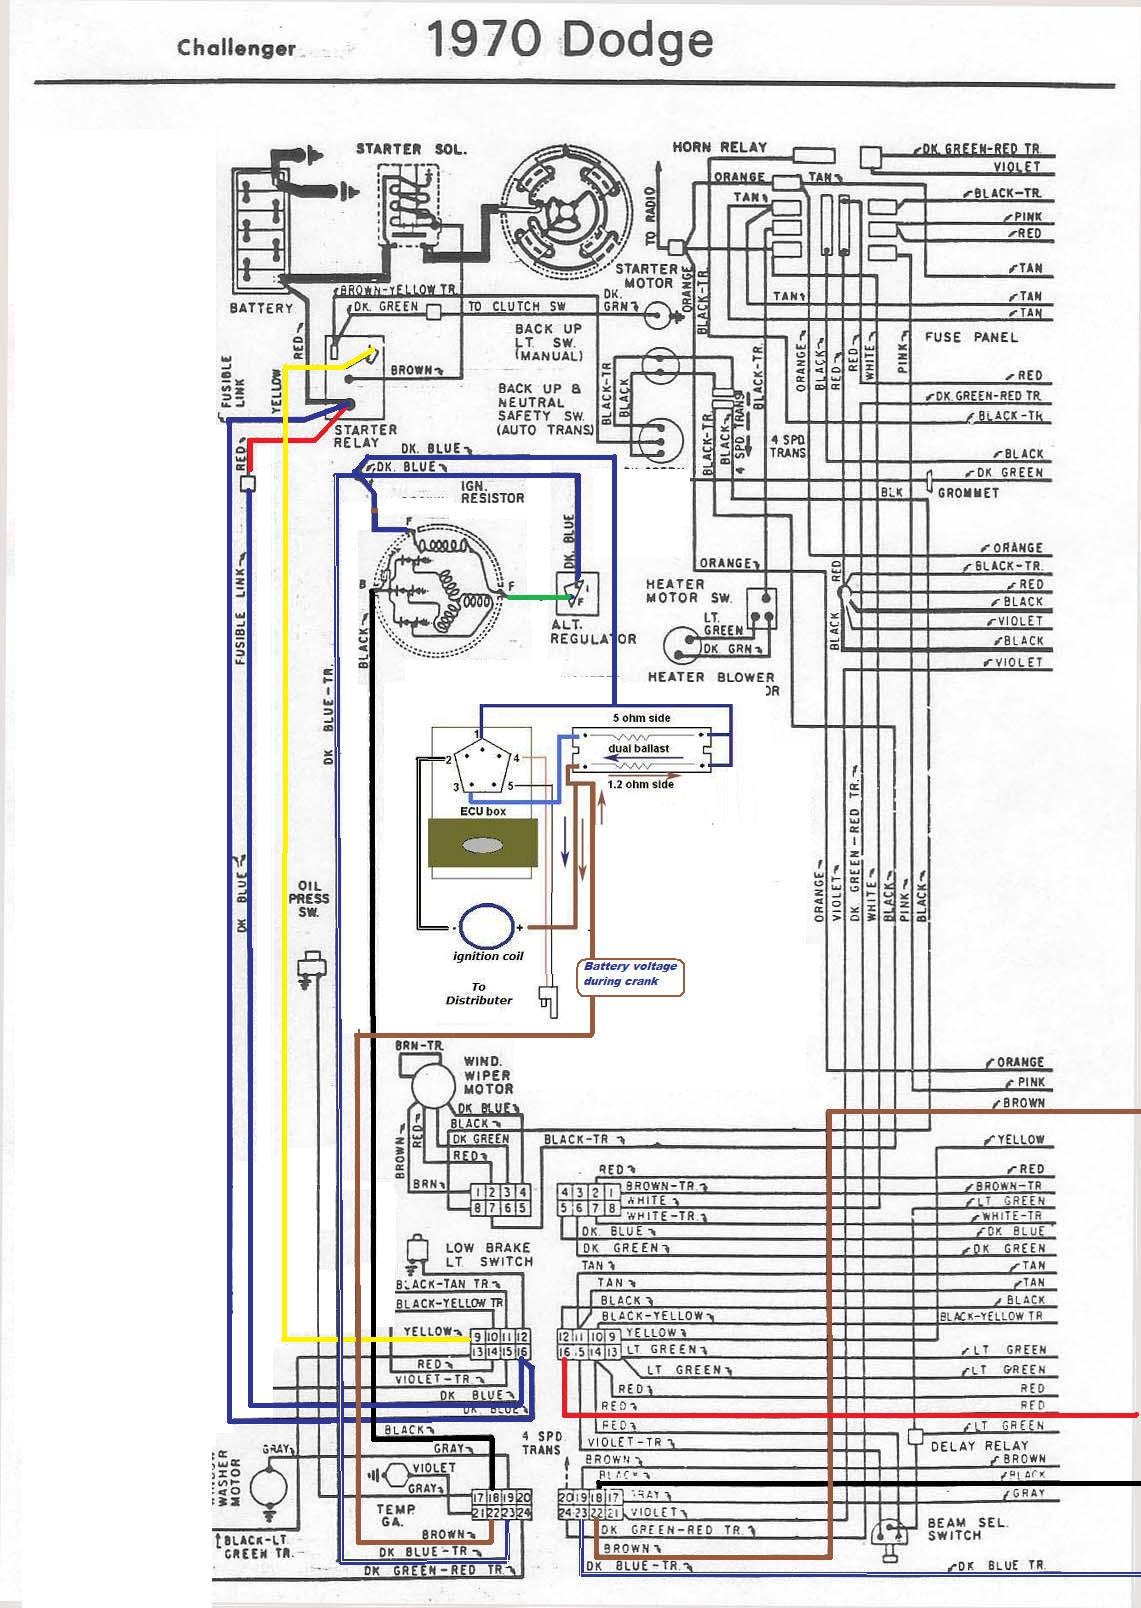 1970 Cuda Ignition Wiring Diagram Fuse Box Plymouth Duster 70 Challenger Automotive U2022 Rh Nfluencer Co Chevy Truck 1969 Road Runner